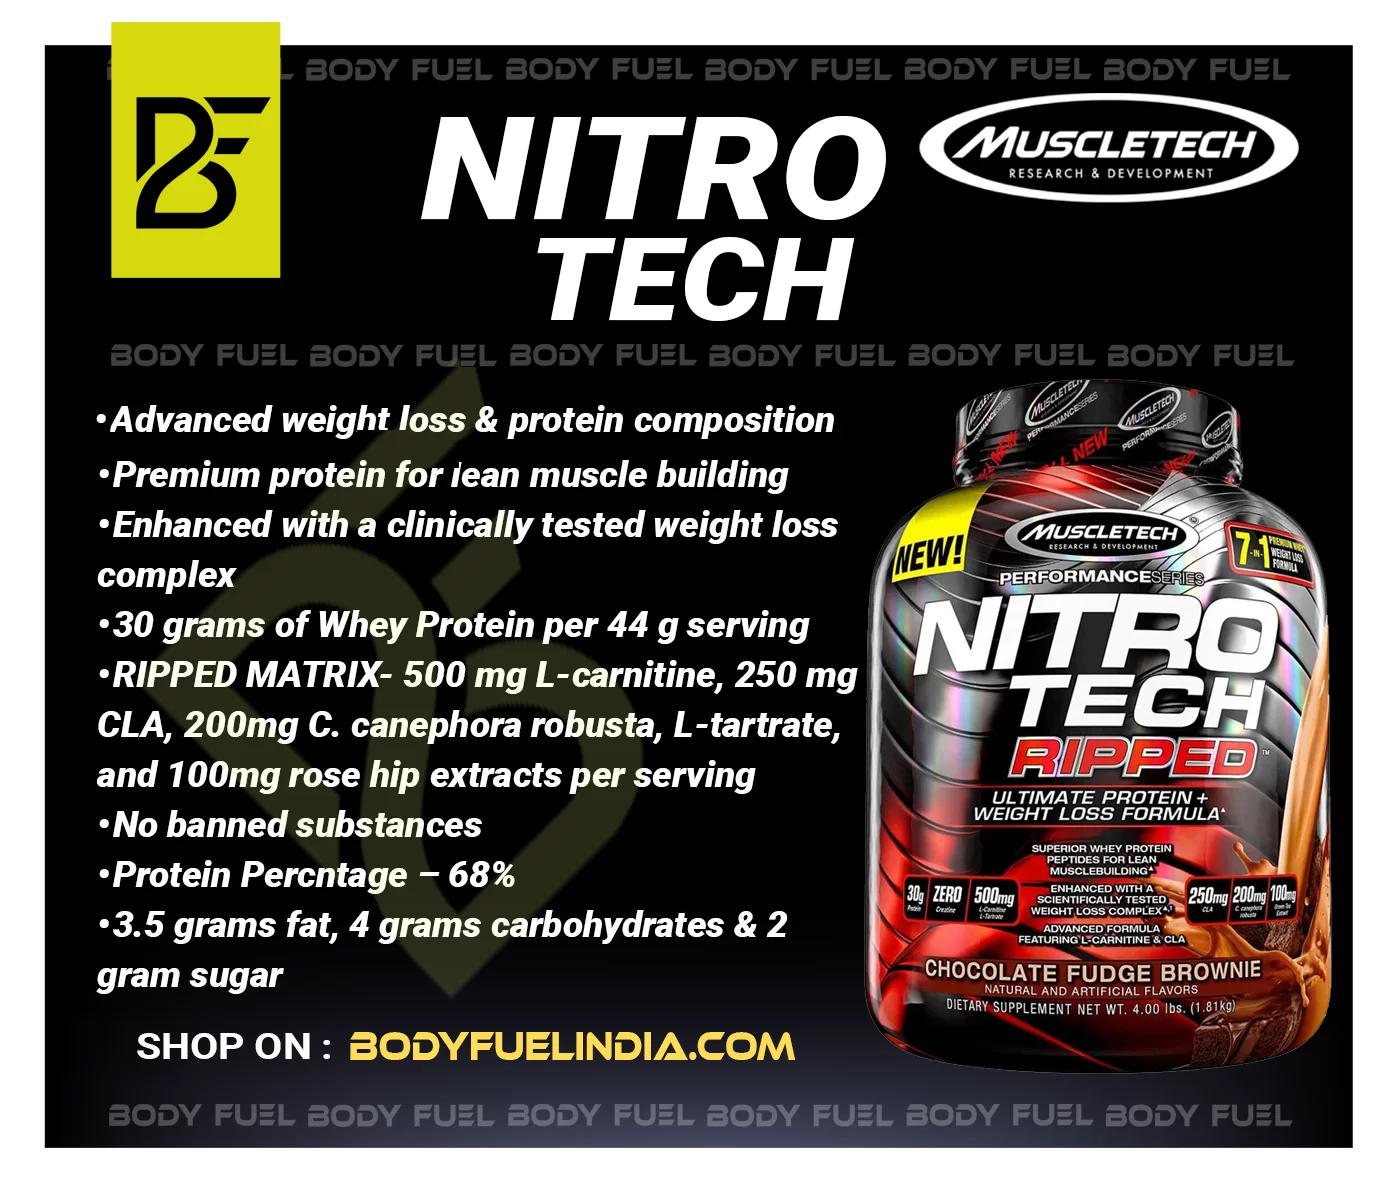 MuscleTech Nitrotech Ripped, Whey Protein, Body Fuel India no.1 Authentic Online Supplement Store